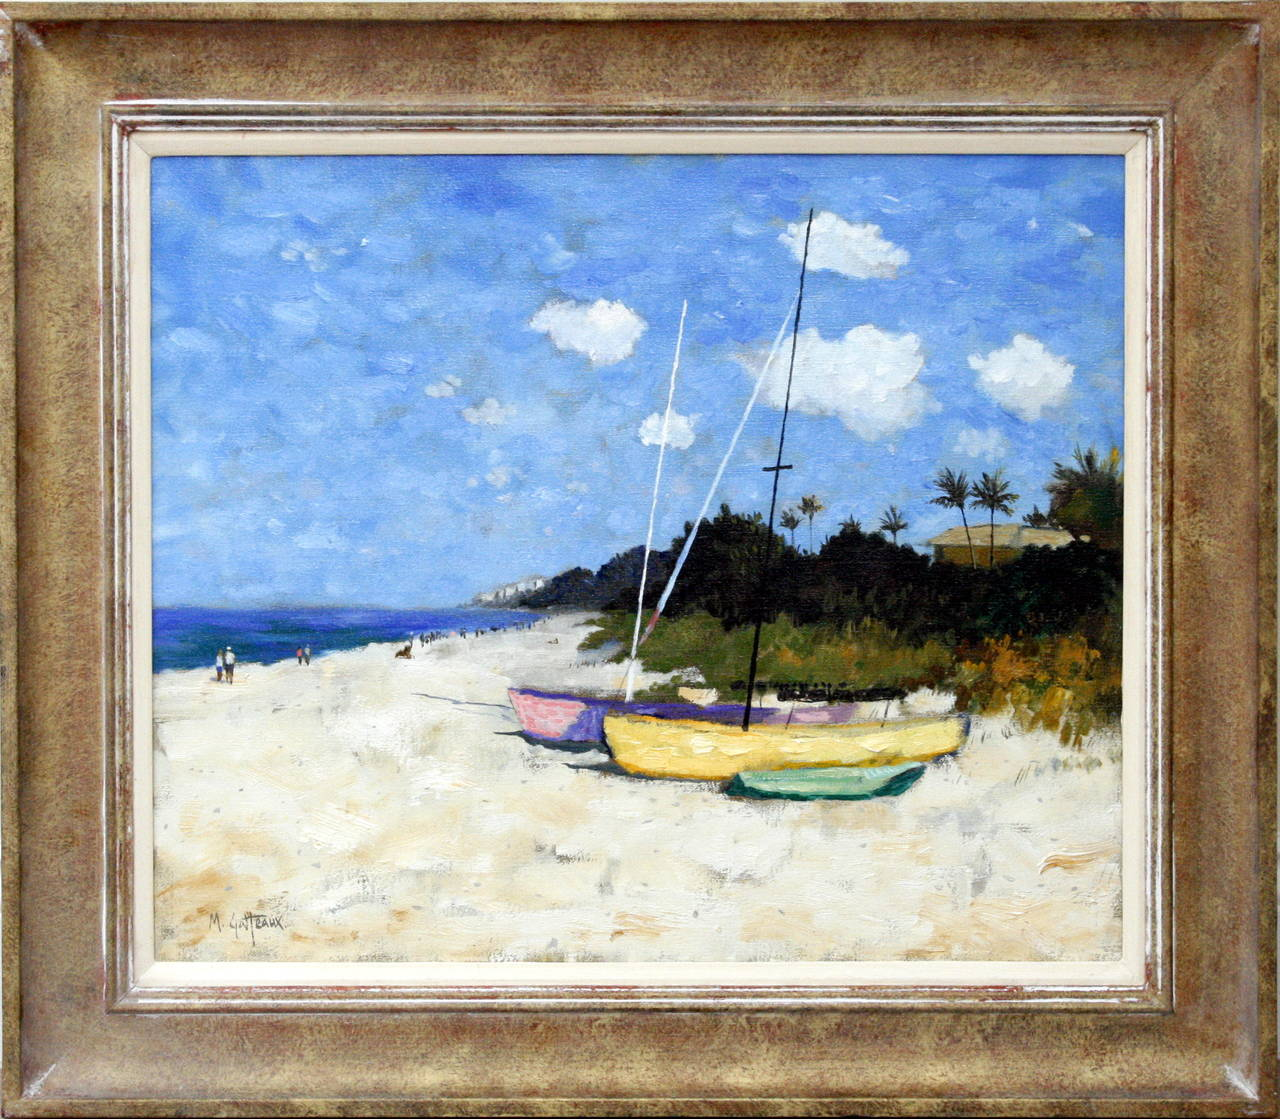 Landscape Lighting Naples Fl: Boats On Naples Beach, Painting For Sale